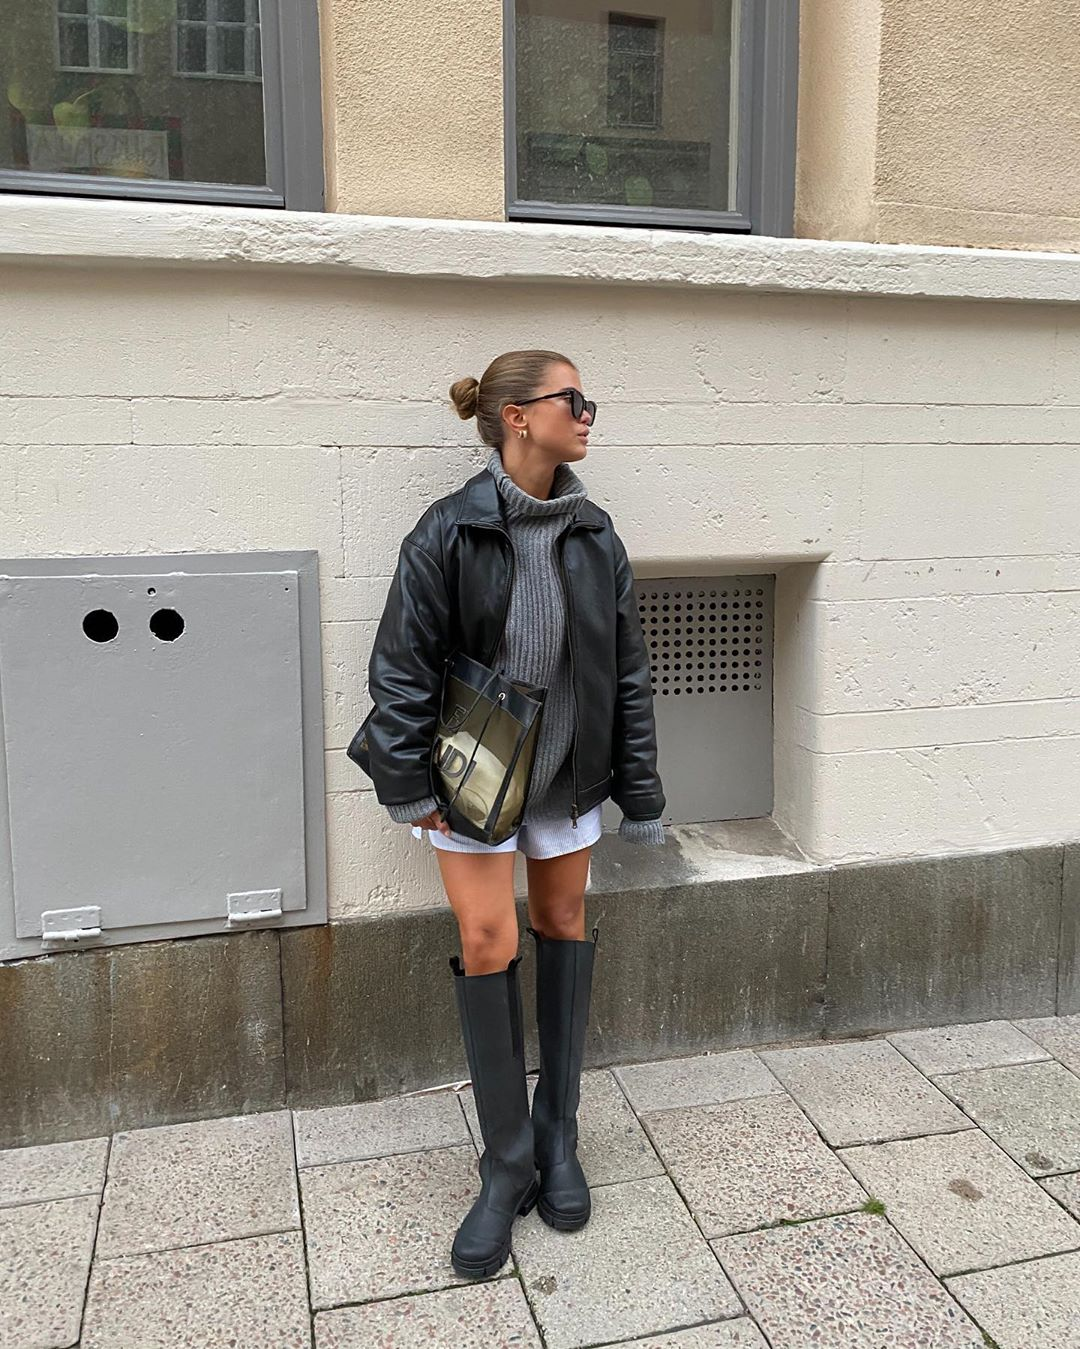 matilda-djerf-ganni-rubber-knee-high-boots-instagram